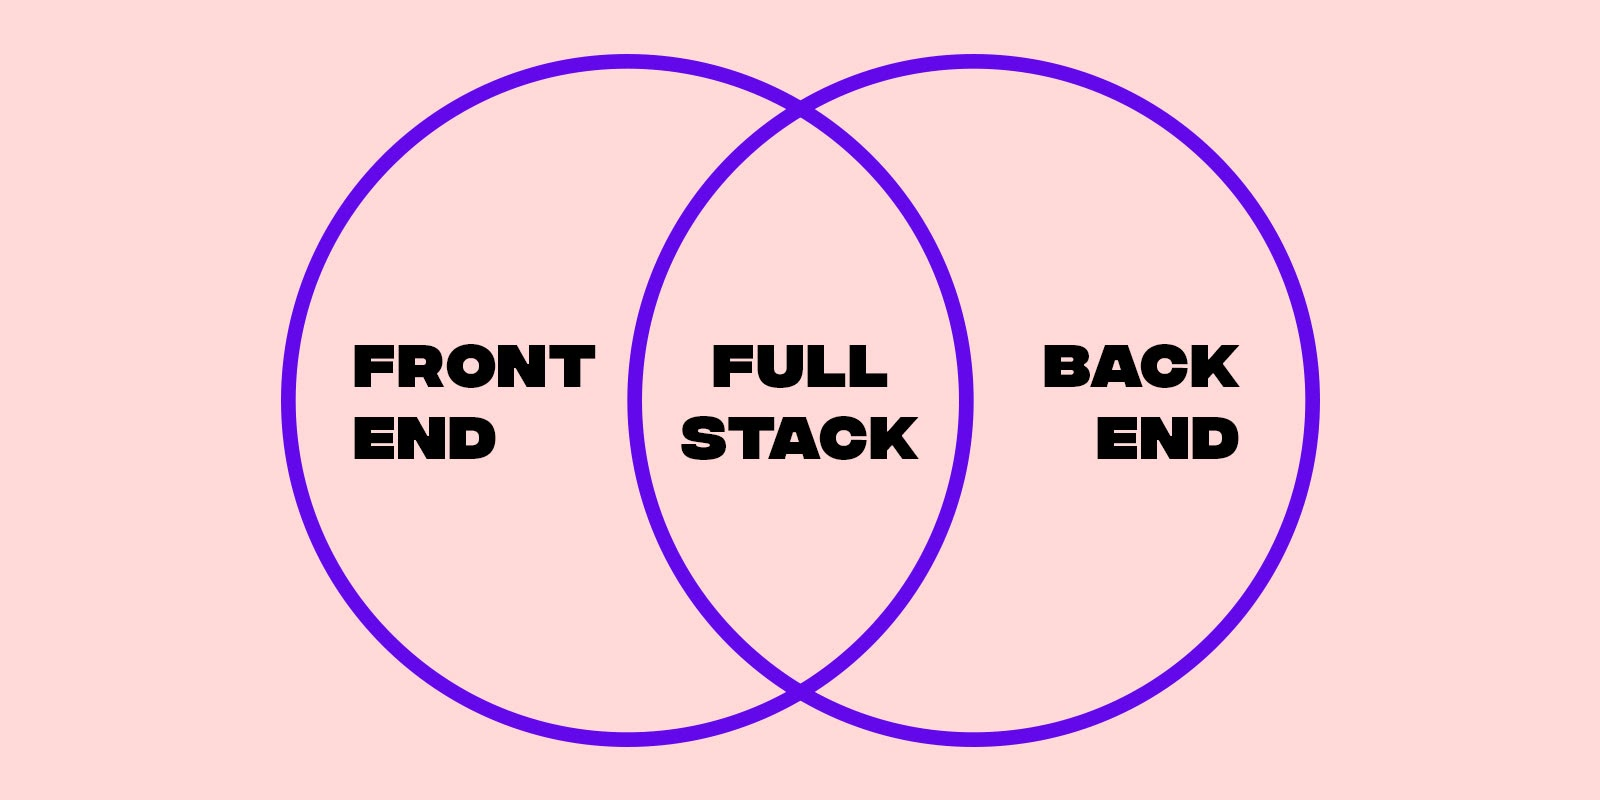 Full-stack development is a hybrid of front-end and back-end development